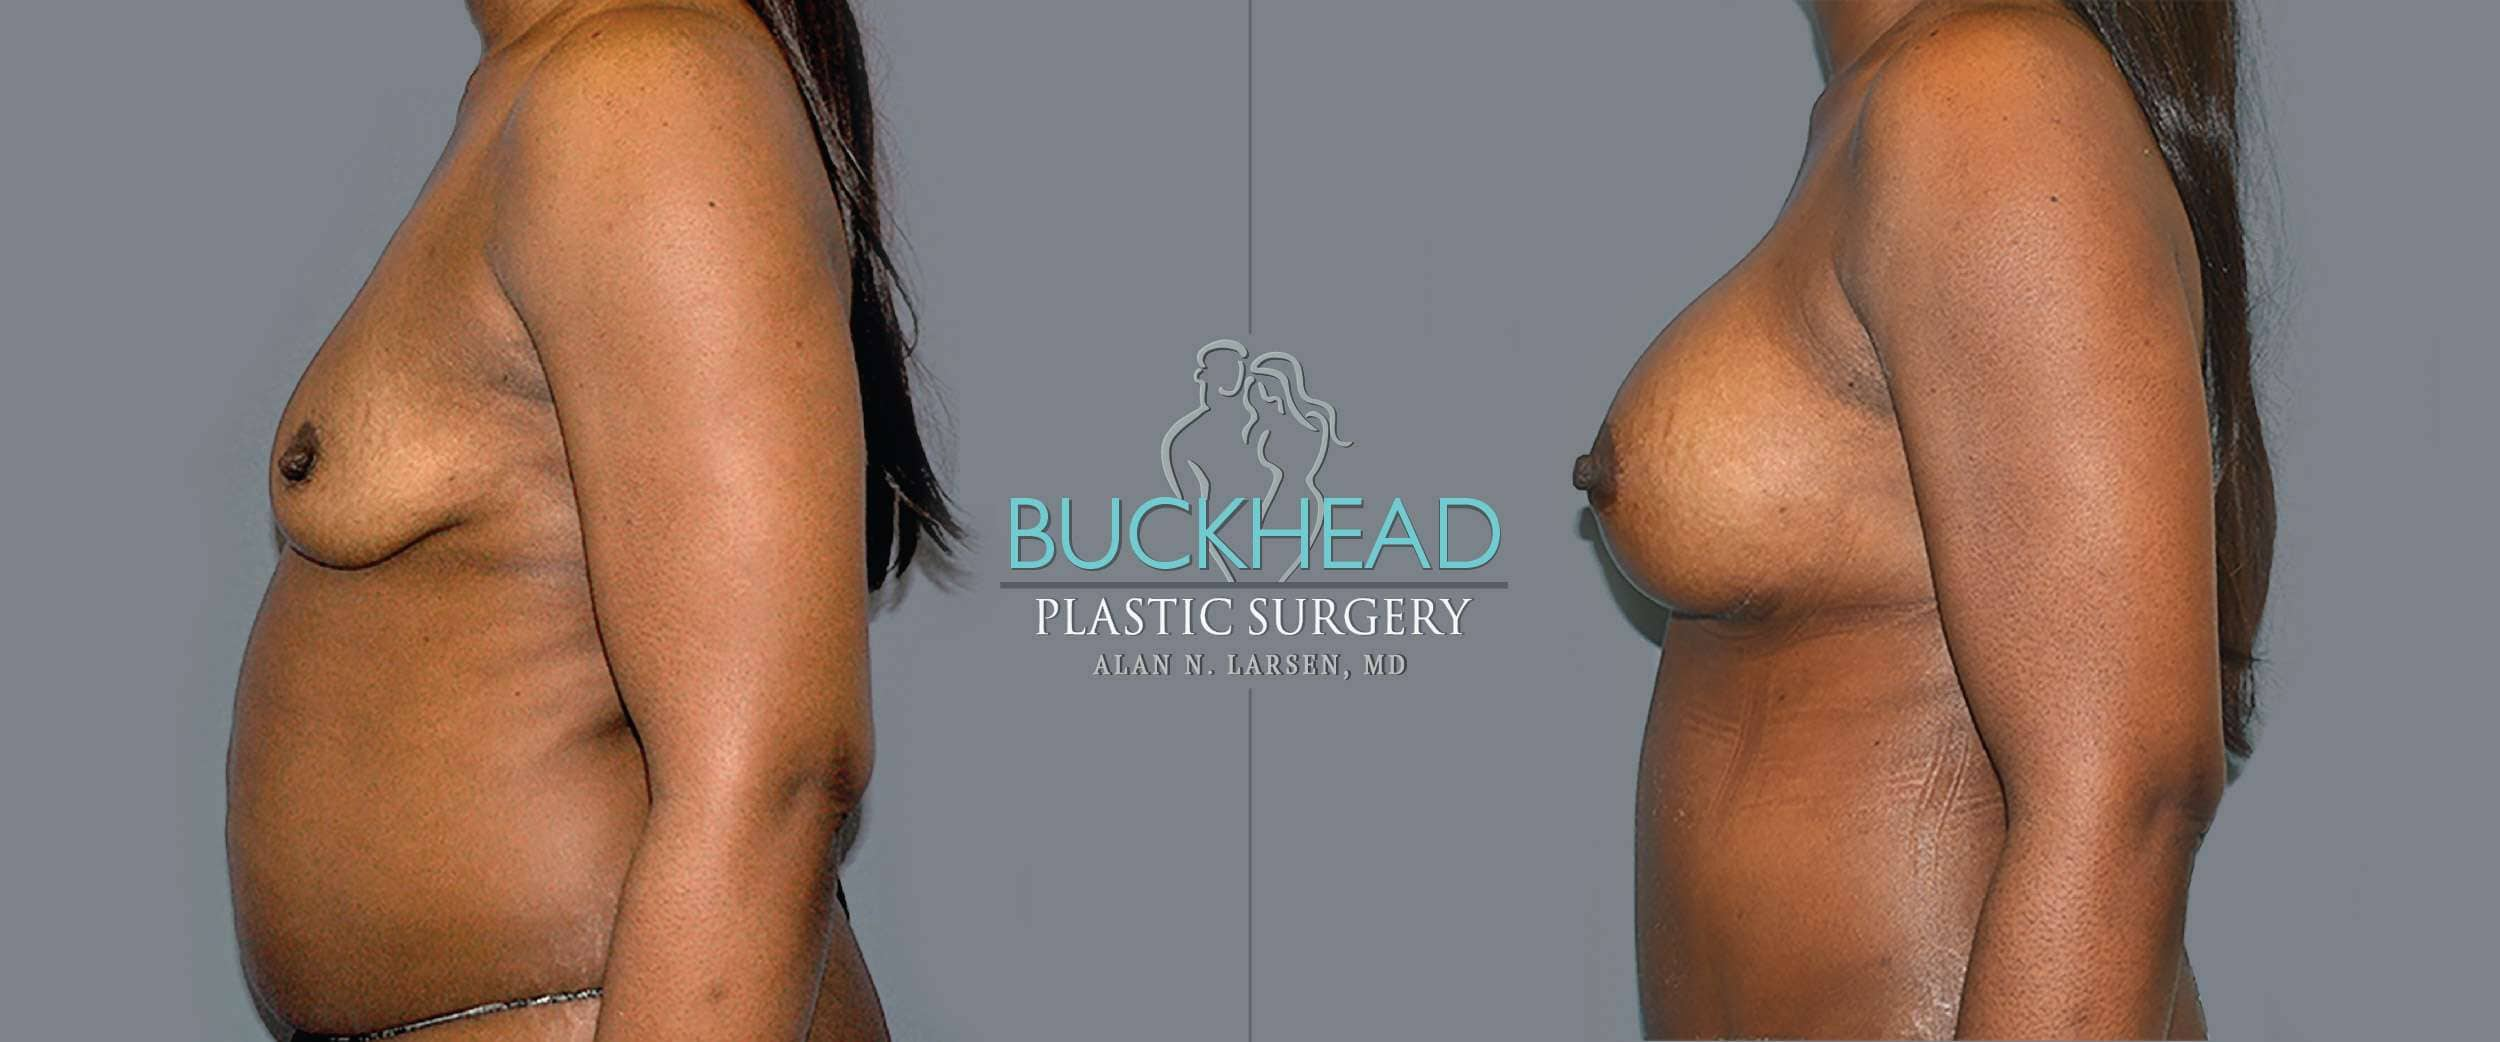 Before and After Photo gallery | Breast Augmentation | Buckhead Plastic Surgery | Board-Certified Plastic Surgeon in Atlanta GA